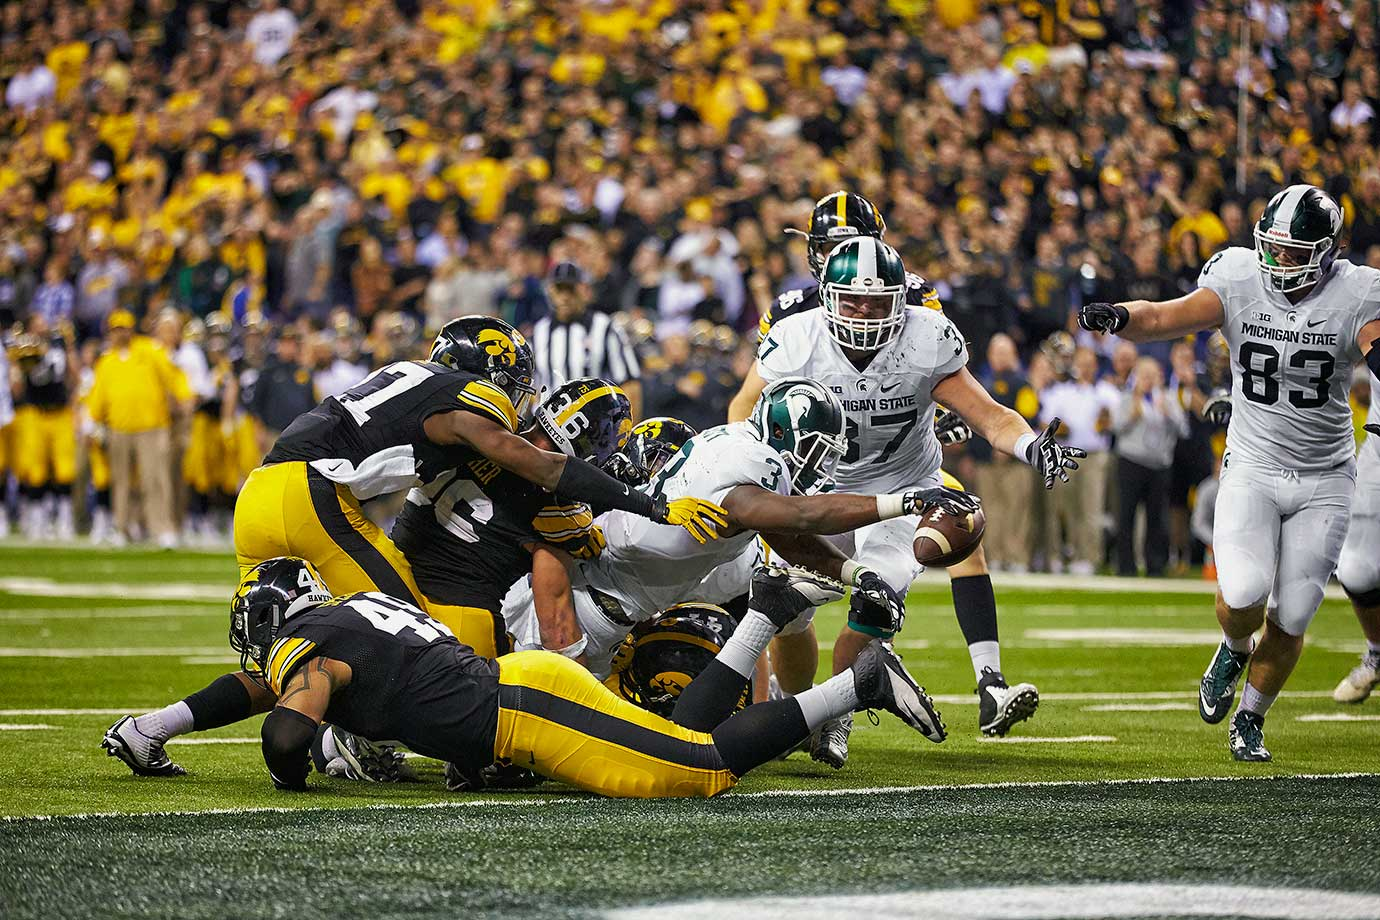 In this de facto College Football Playoff quarterfinal slugfest, Michigan State capped off its second Big Ten title in three years using a 22-play, 82-yard drive that drained nine minutes off the clock before L.J. Scott spun and reached into the end zone from a yard out with 27 seconds left.